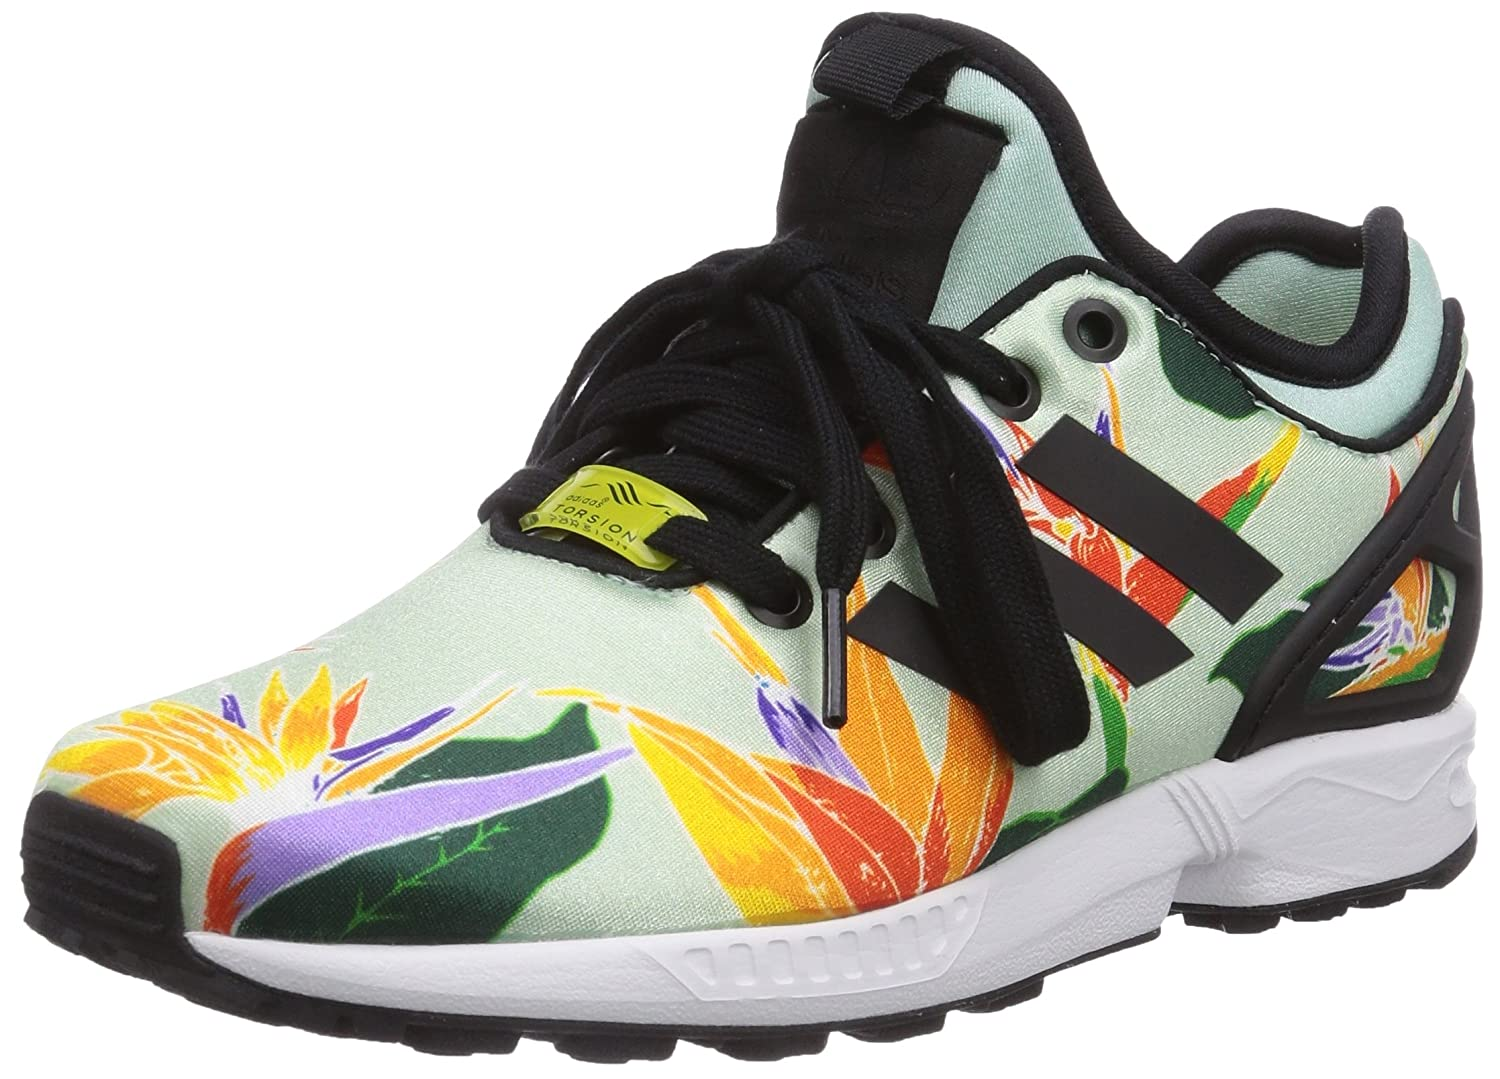 3301c9e92dff1 adidas ZX Flux NPS, Unisex Adults' Trainers